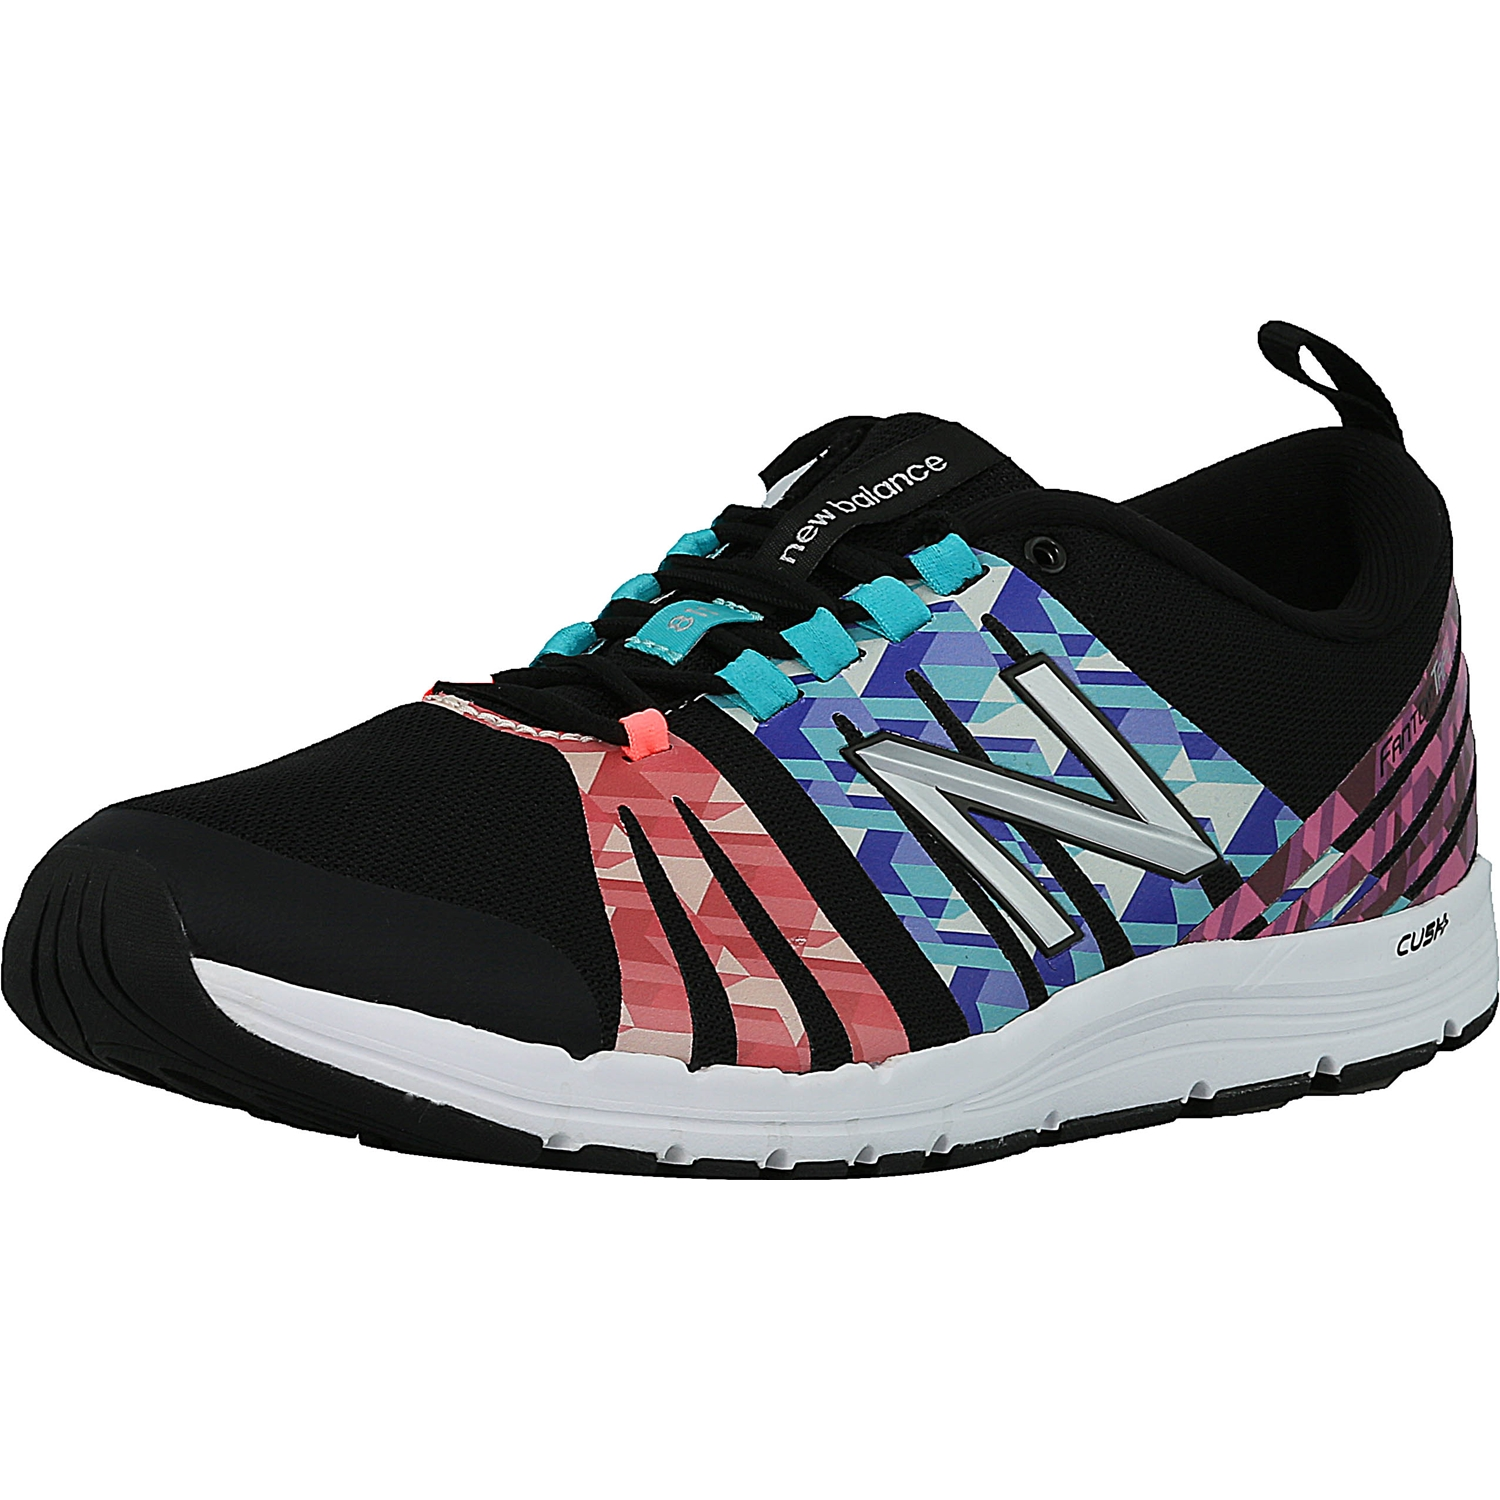 New Balance Women's Wx811 Bm2 Ankle-High Running Shoe 6.5W by New Balance